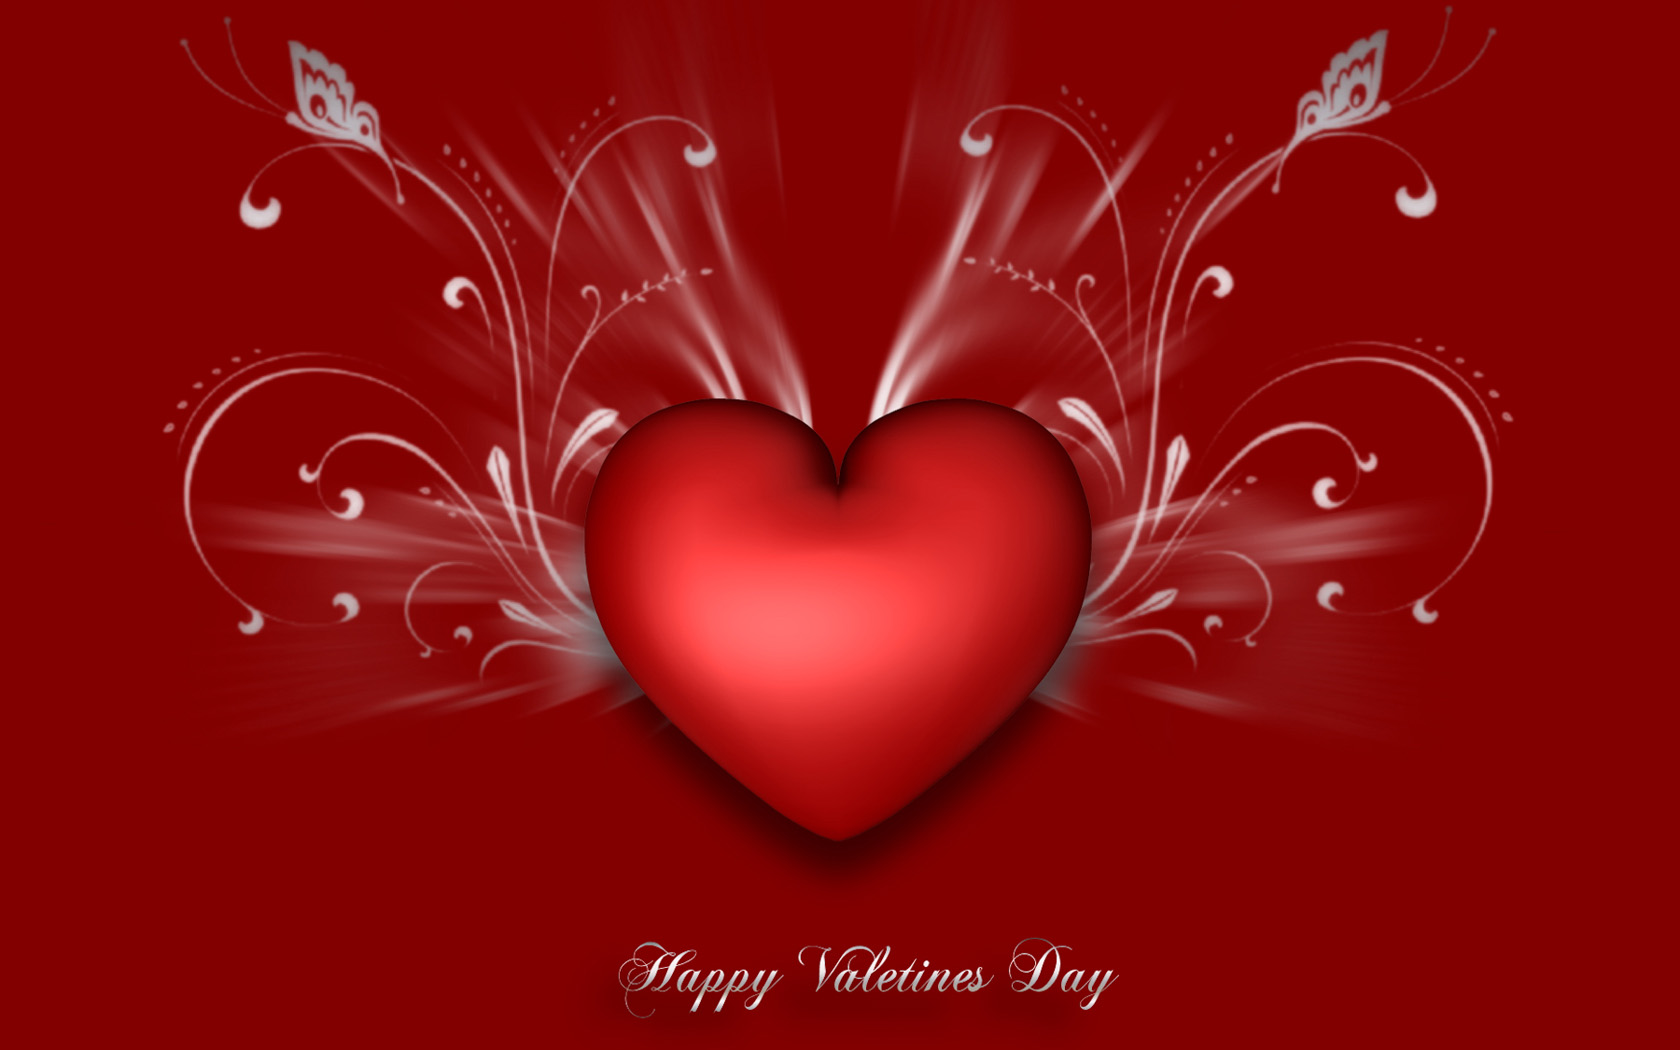 Sms Offer To Secure Valentines Day Bookings Phorest Blog